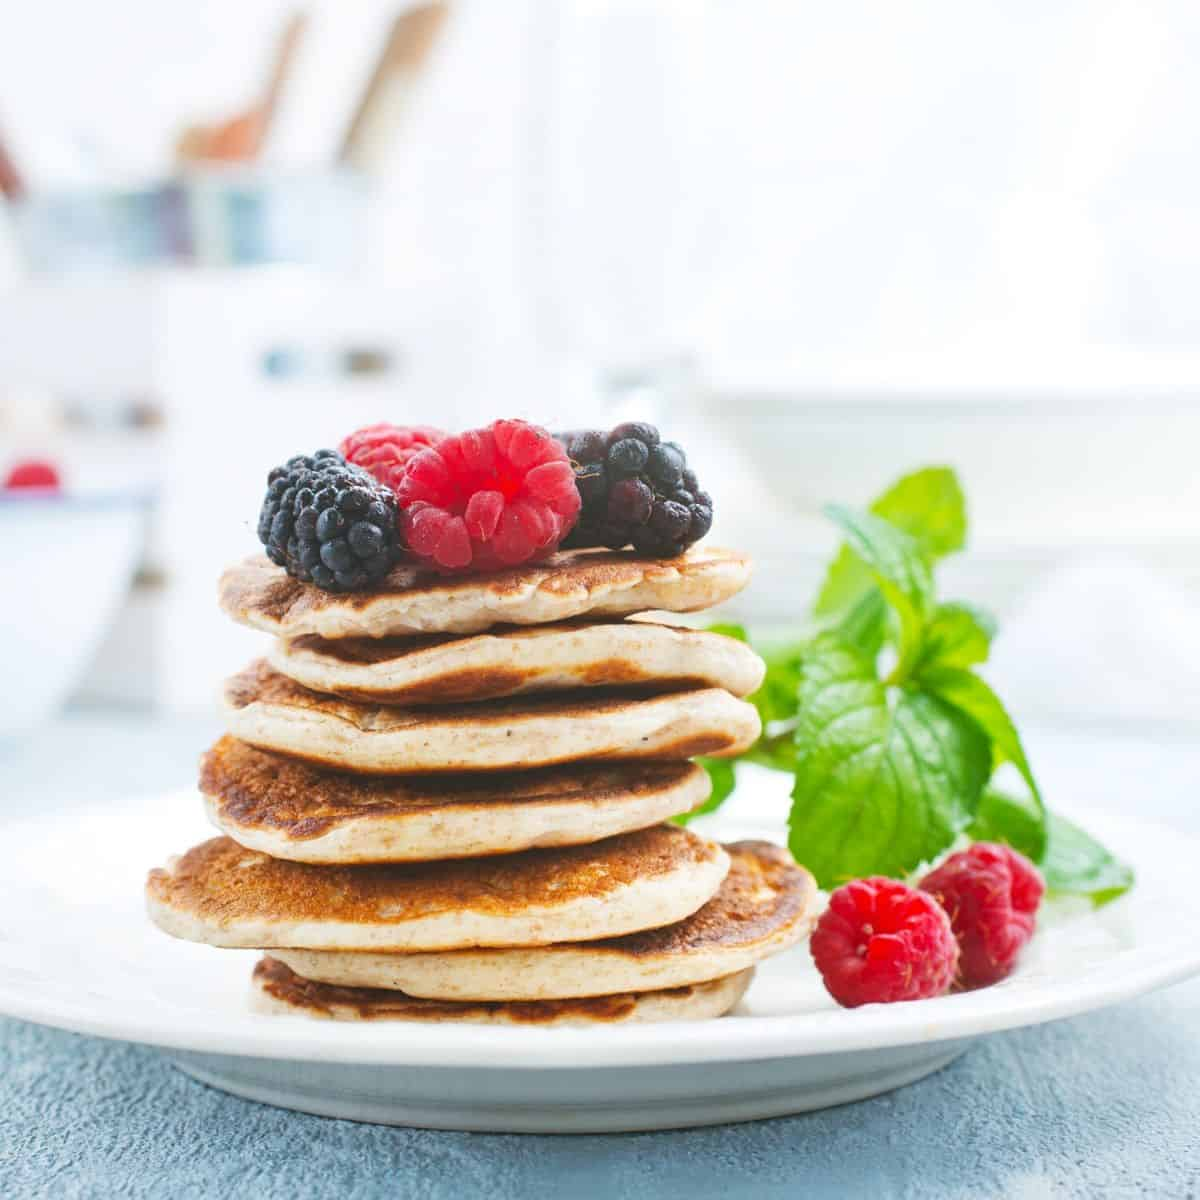 protein pancakes that are low carb